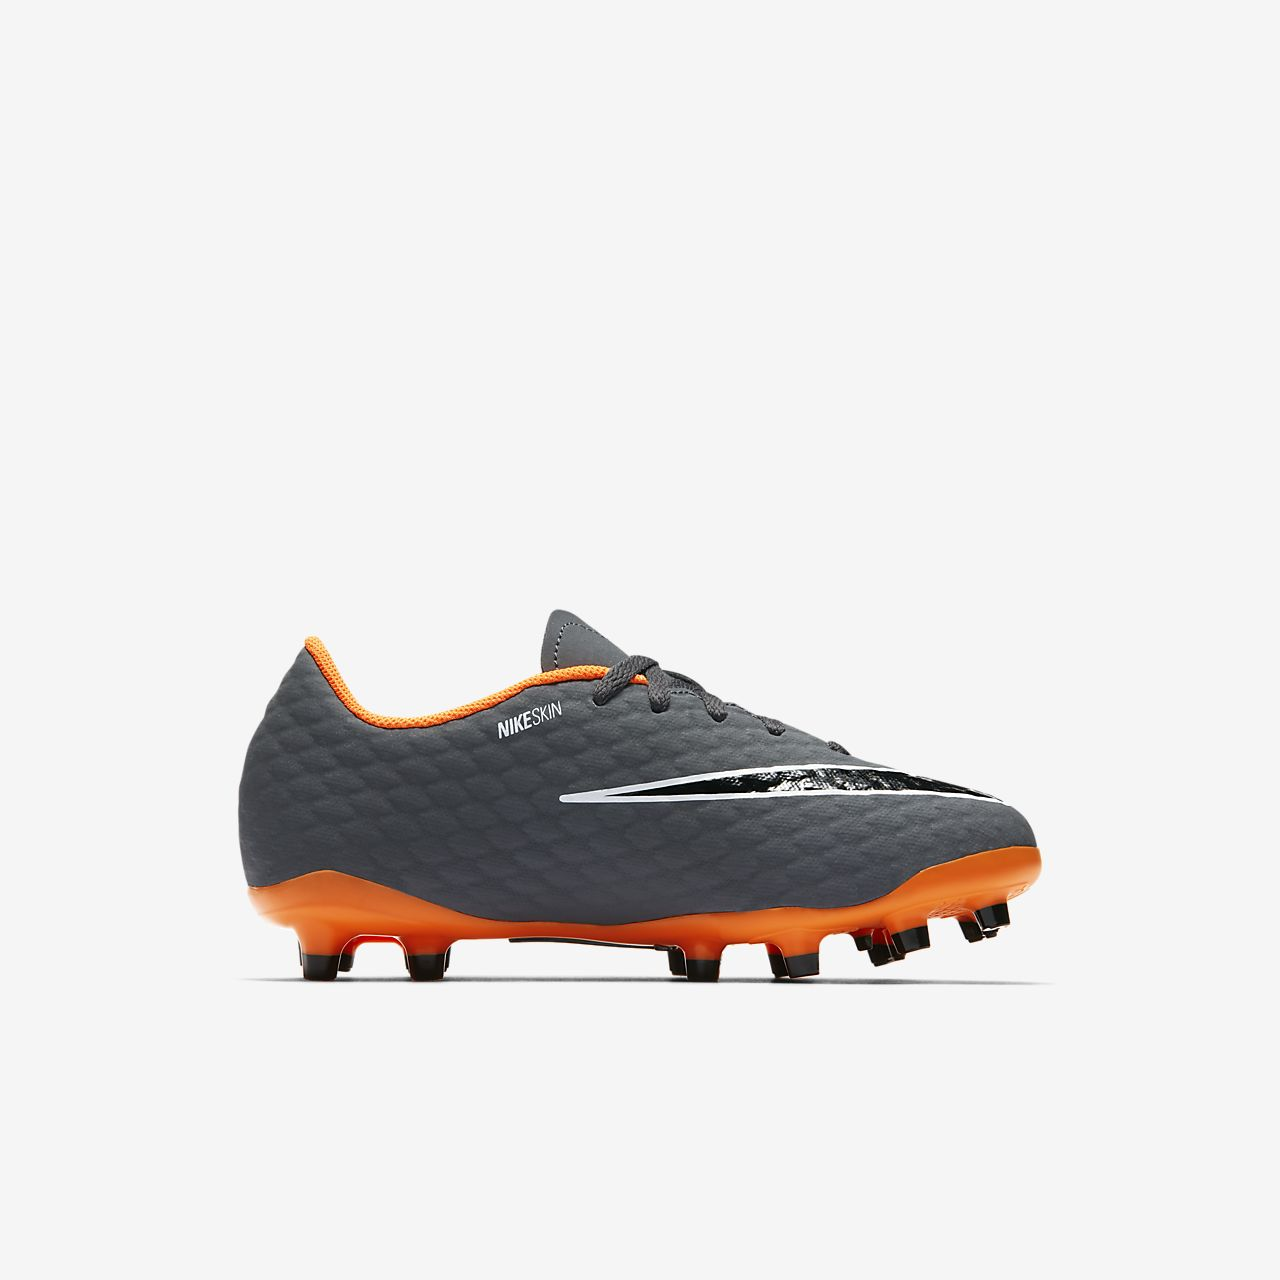 Nike - JUNIOR Phantom 3 Academy FG